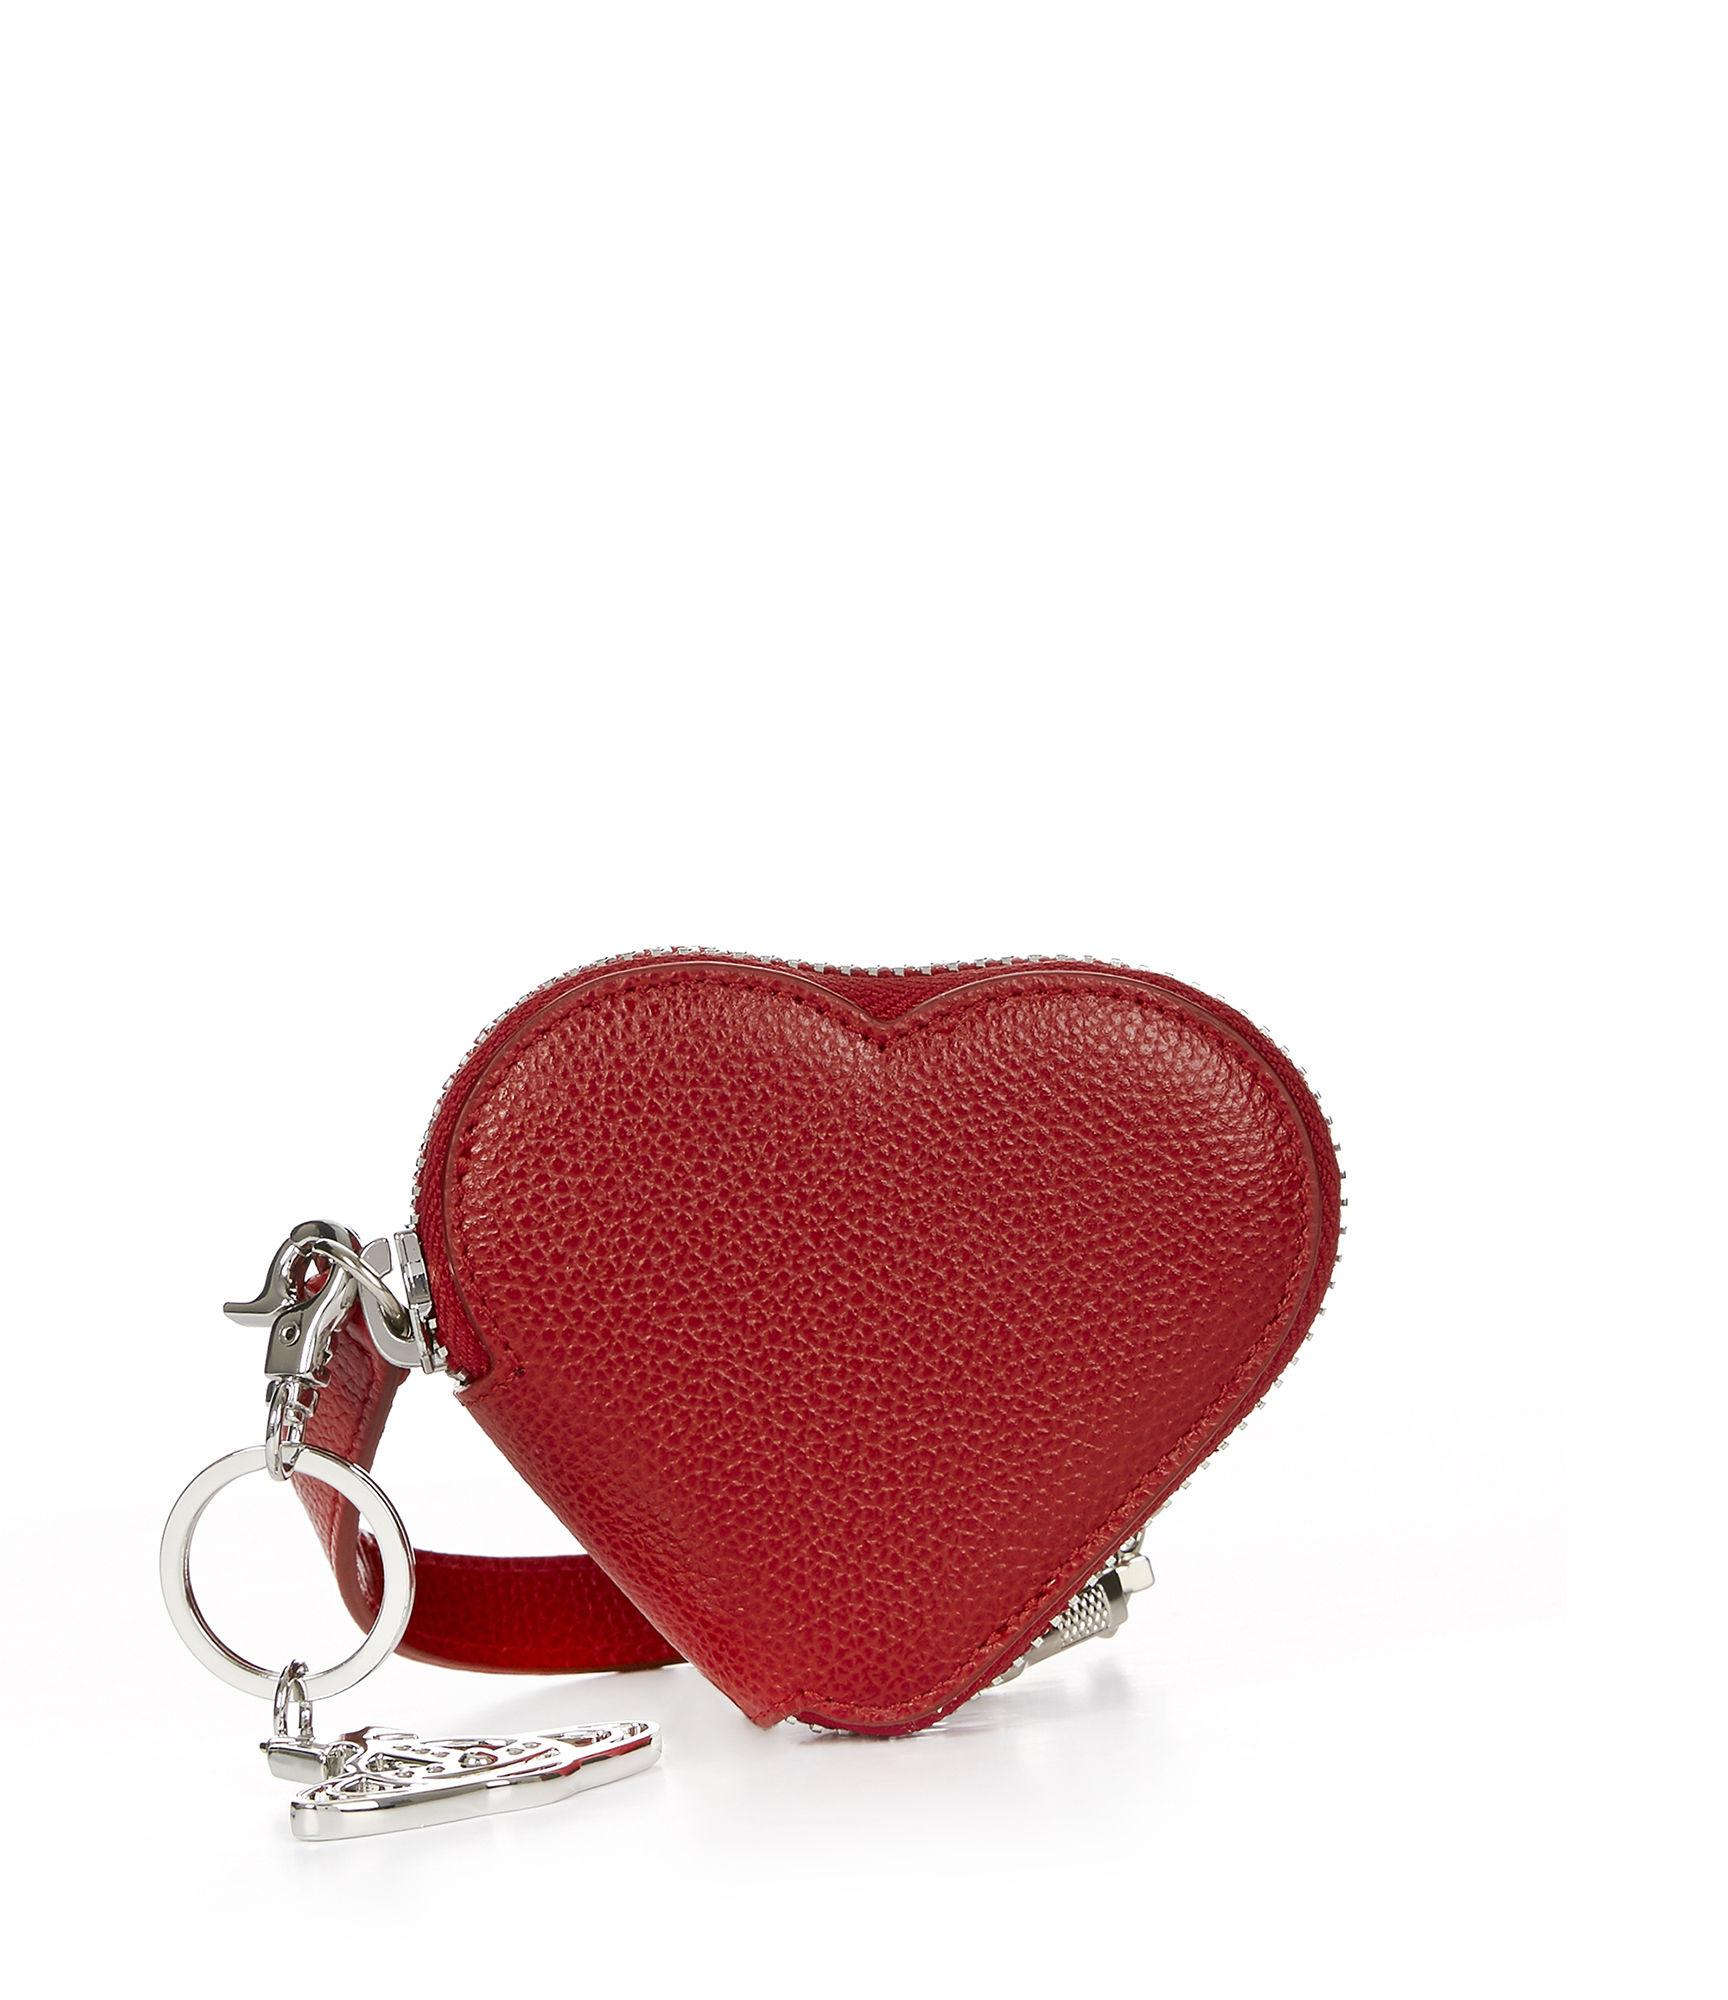 442630701c Vivienne Westwood Johanna Heart Coin Purse With Orb Gadget 51070018 Red